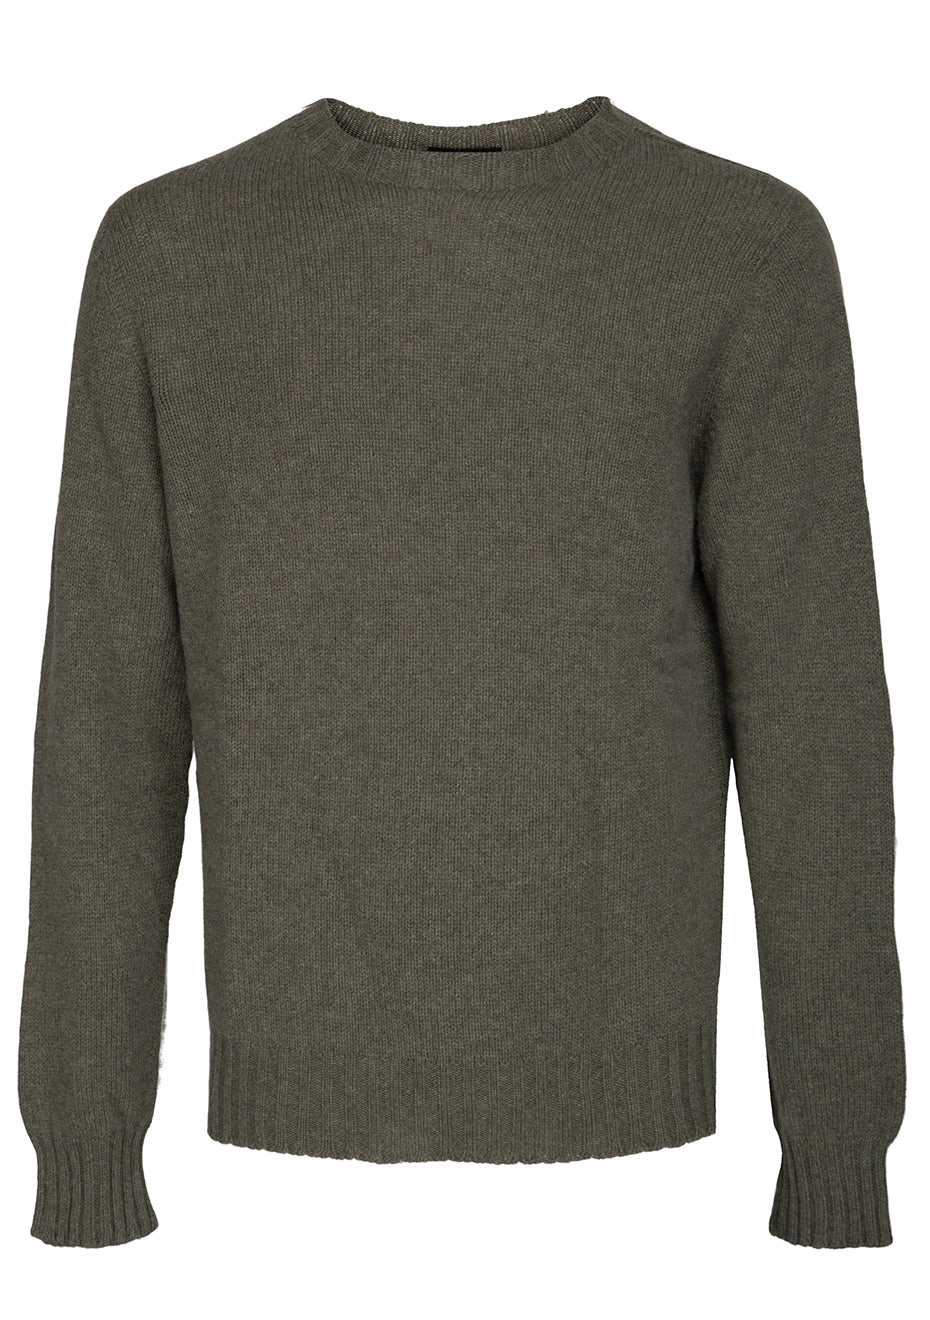 Moss Cashmere Sweater